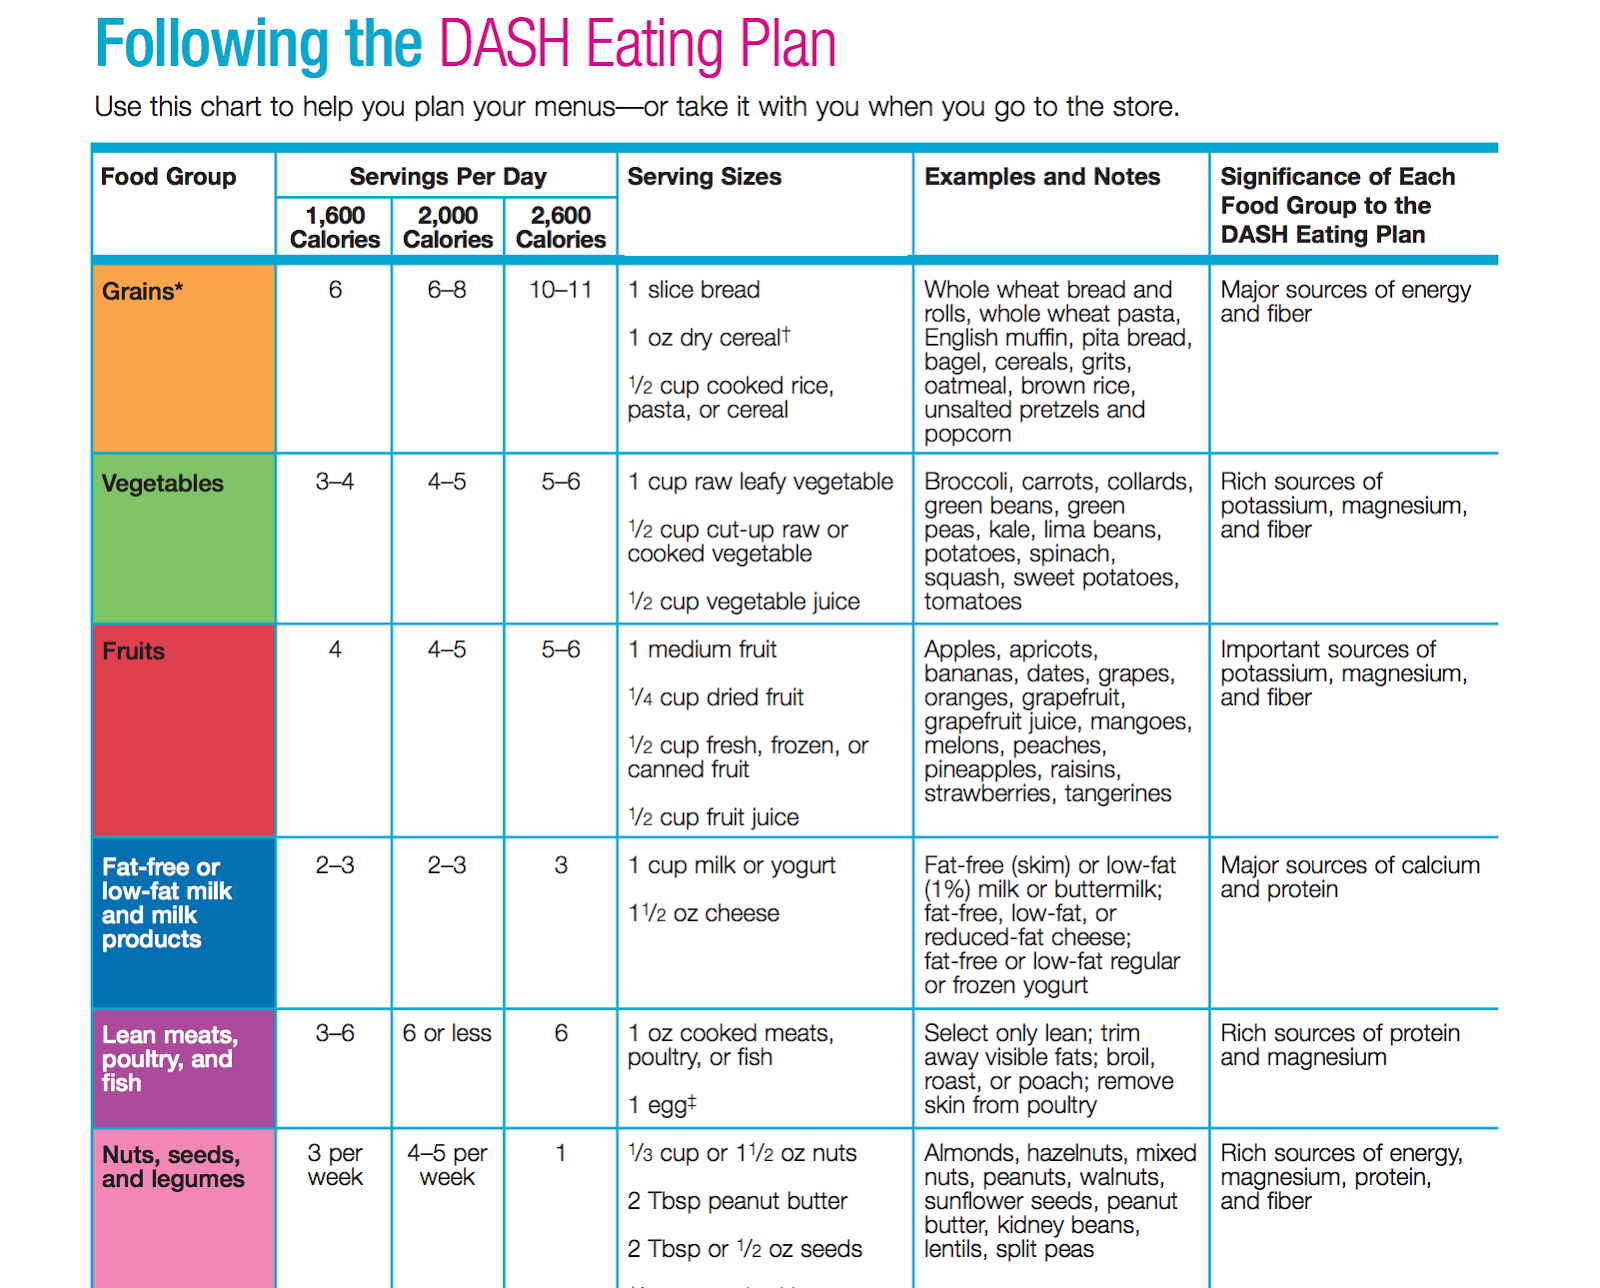 The 10 Most Filling Foods for Weight Loss